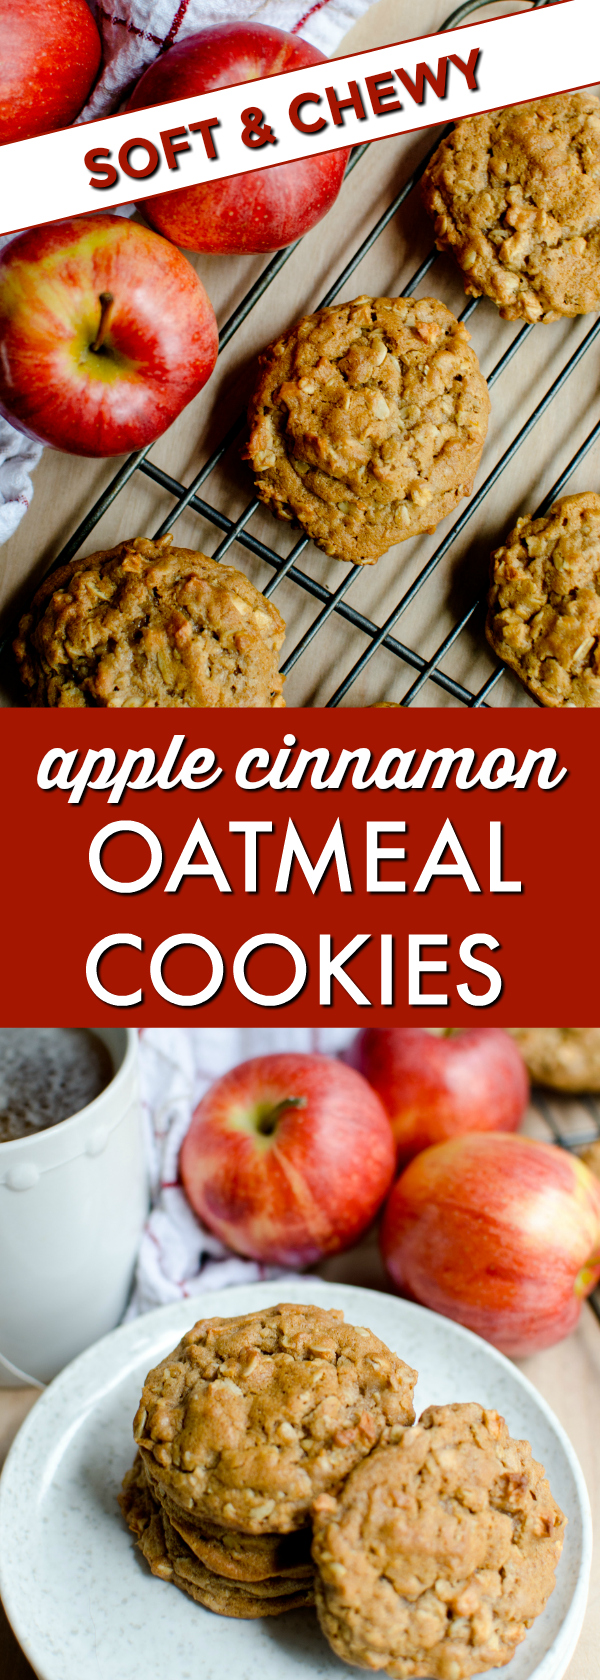 Apple Cinnamon Oatmeal Cookies are perfect any day of the year! Soft and chewy with a delicious apple cinnamon flavor. Comfort in every bite!